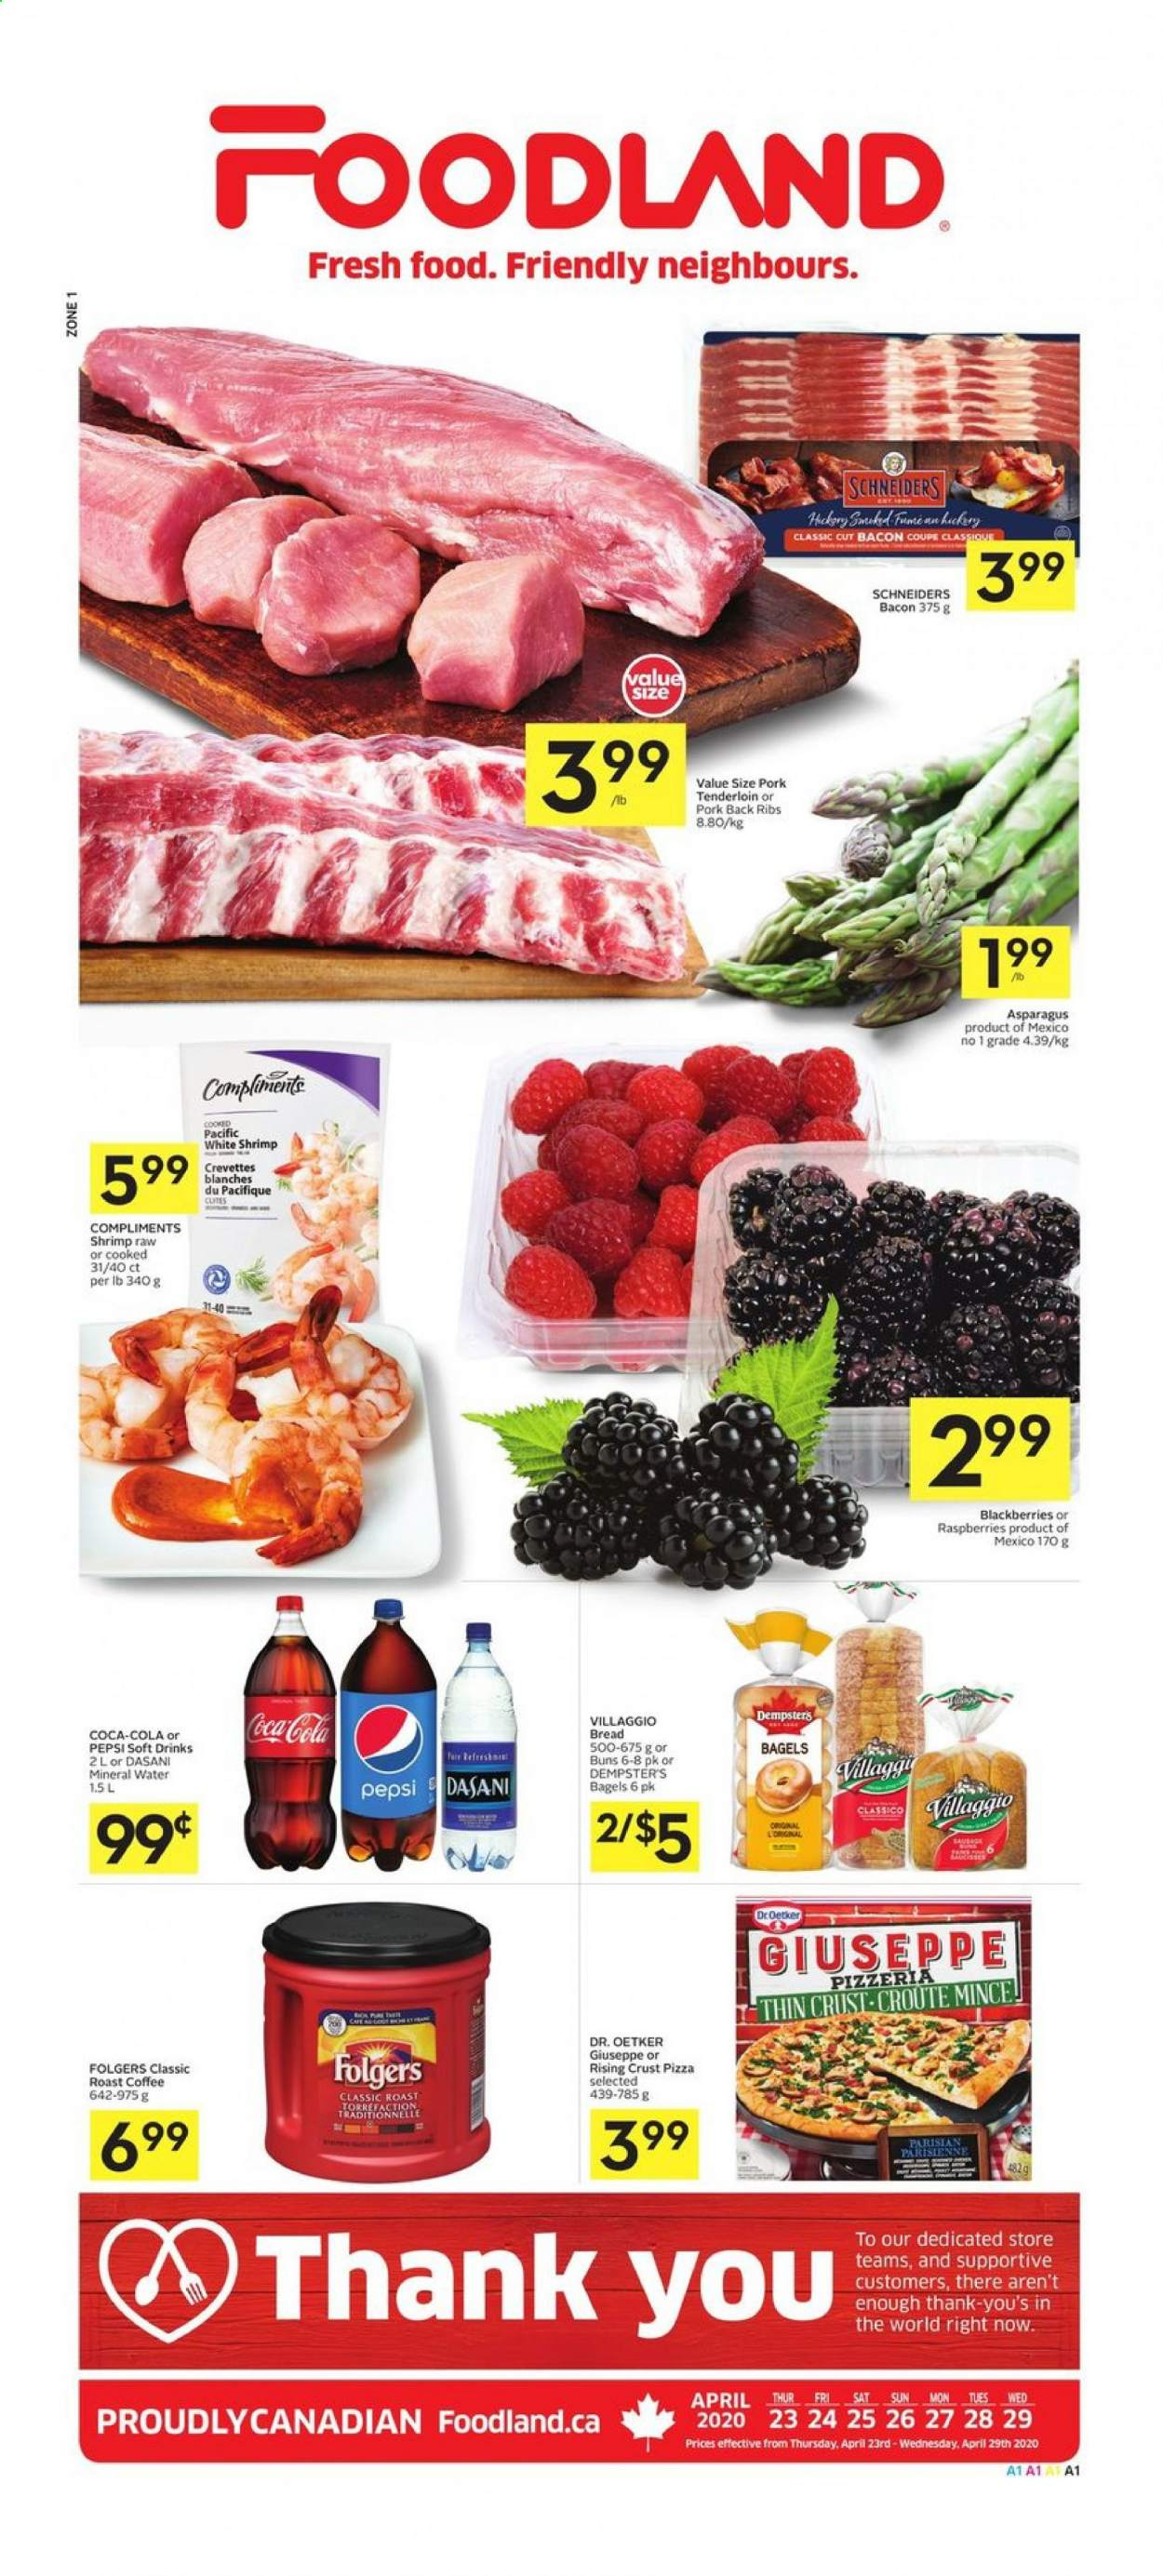 Foodland Flyer  - April 23, 2020 - April 29, 2020. Page 1.